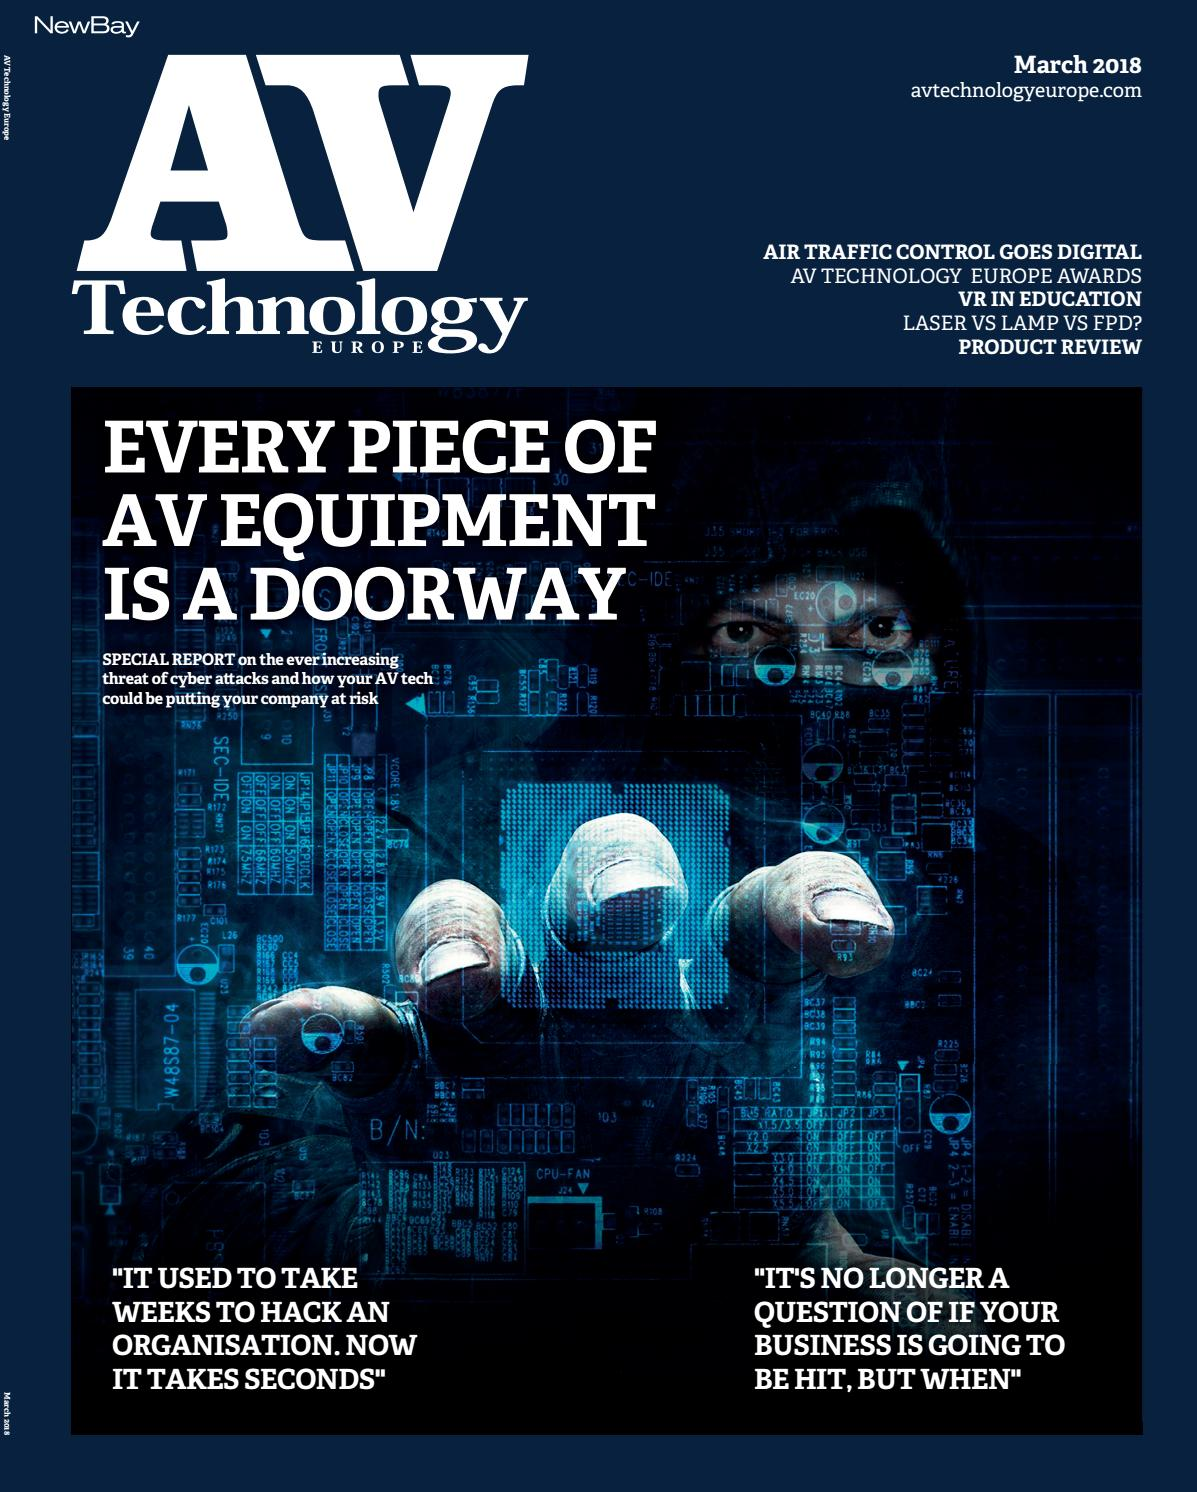 AVTechnology Europe March 2018 by Future PLC - issuu